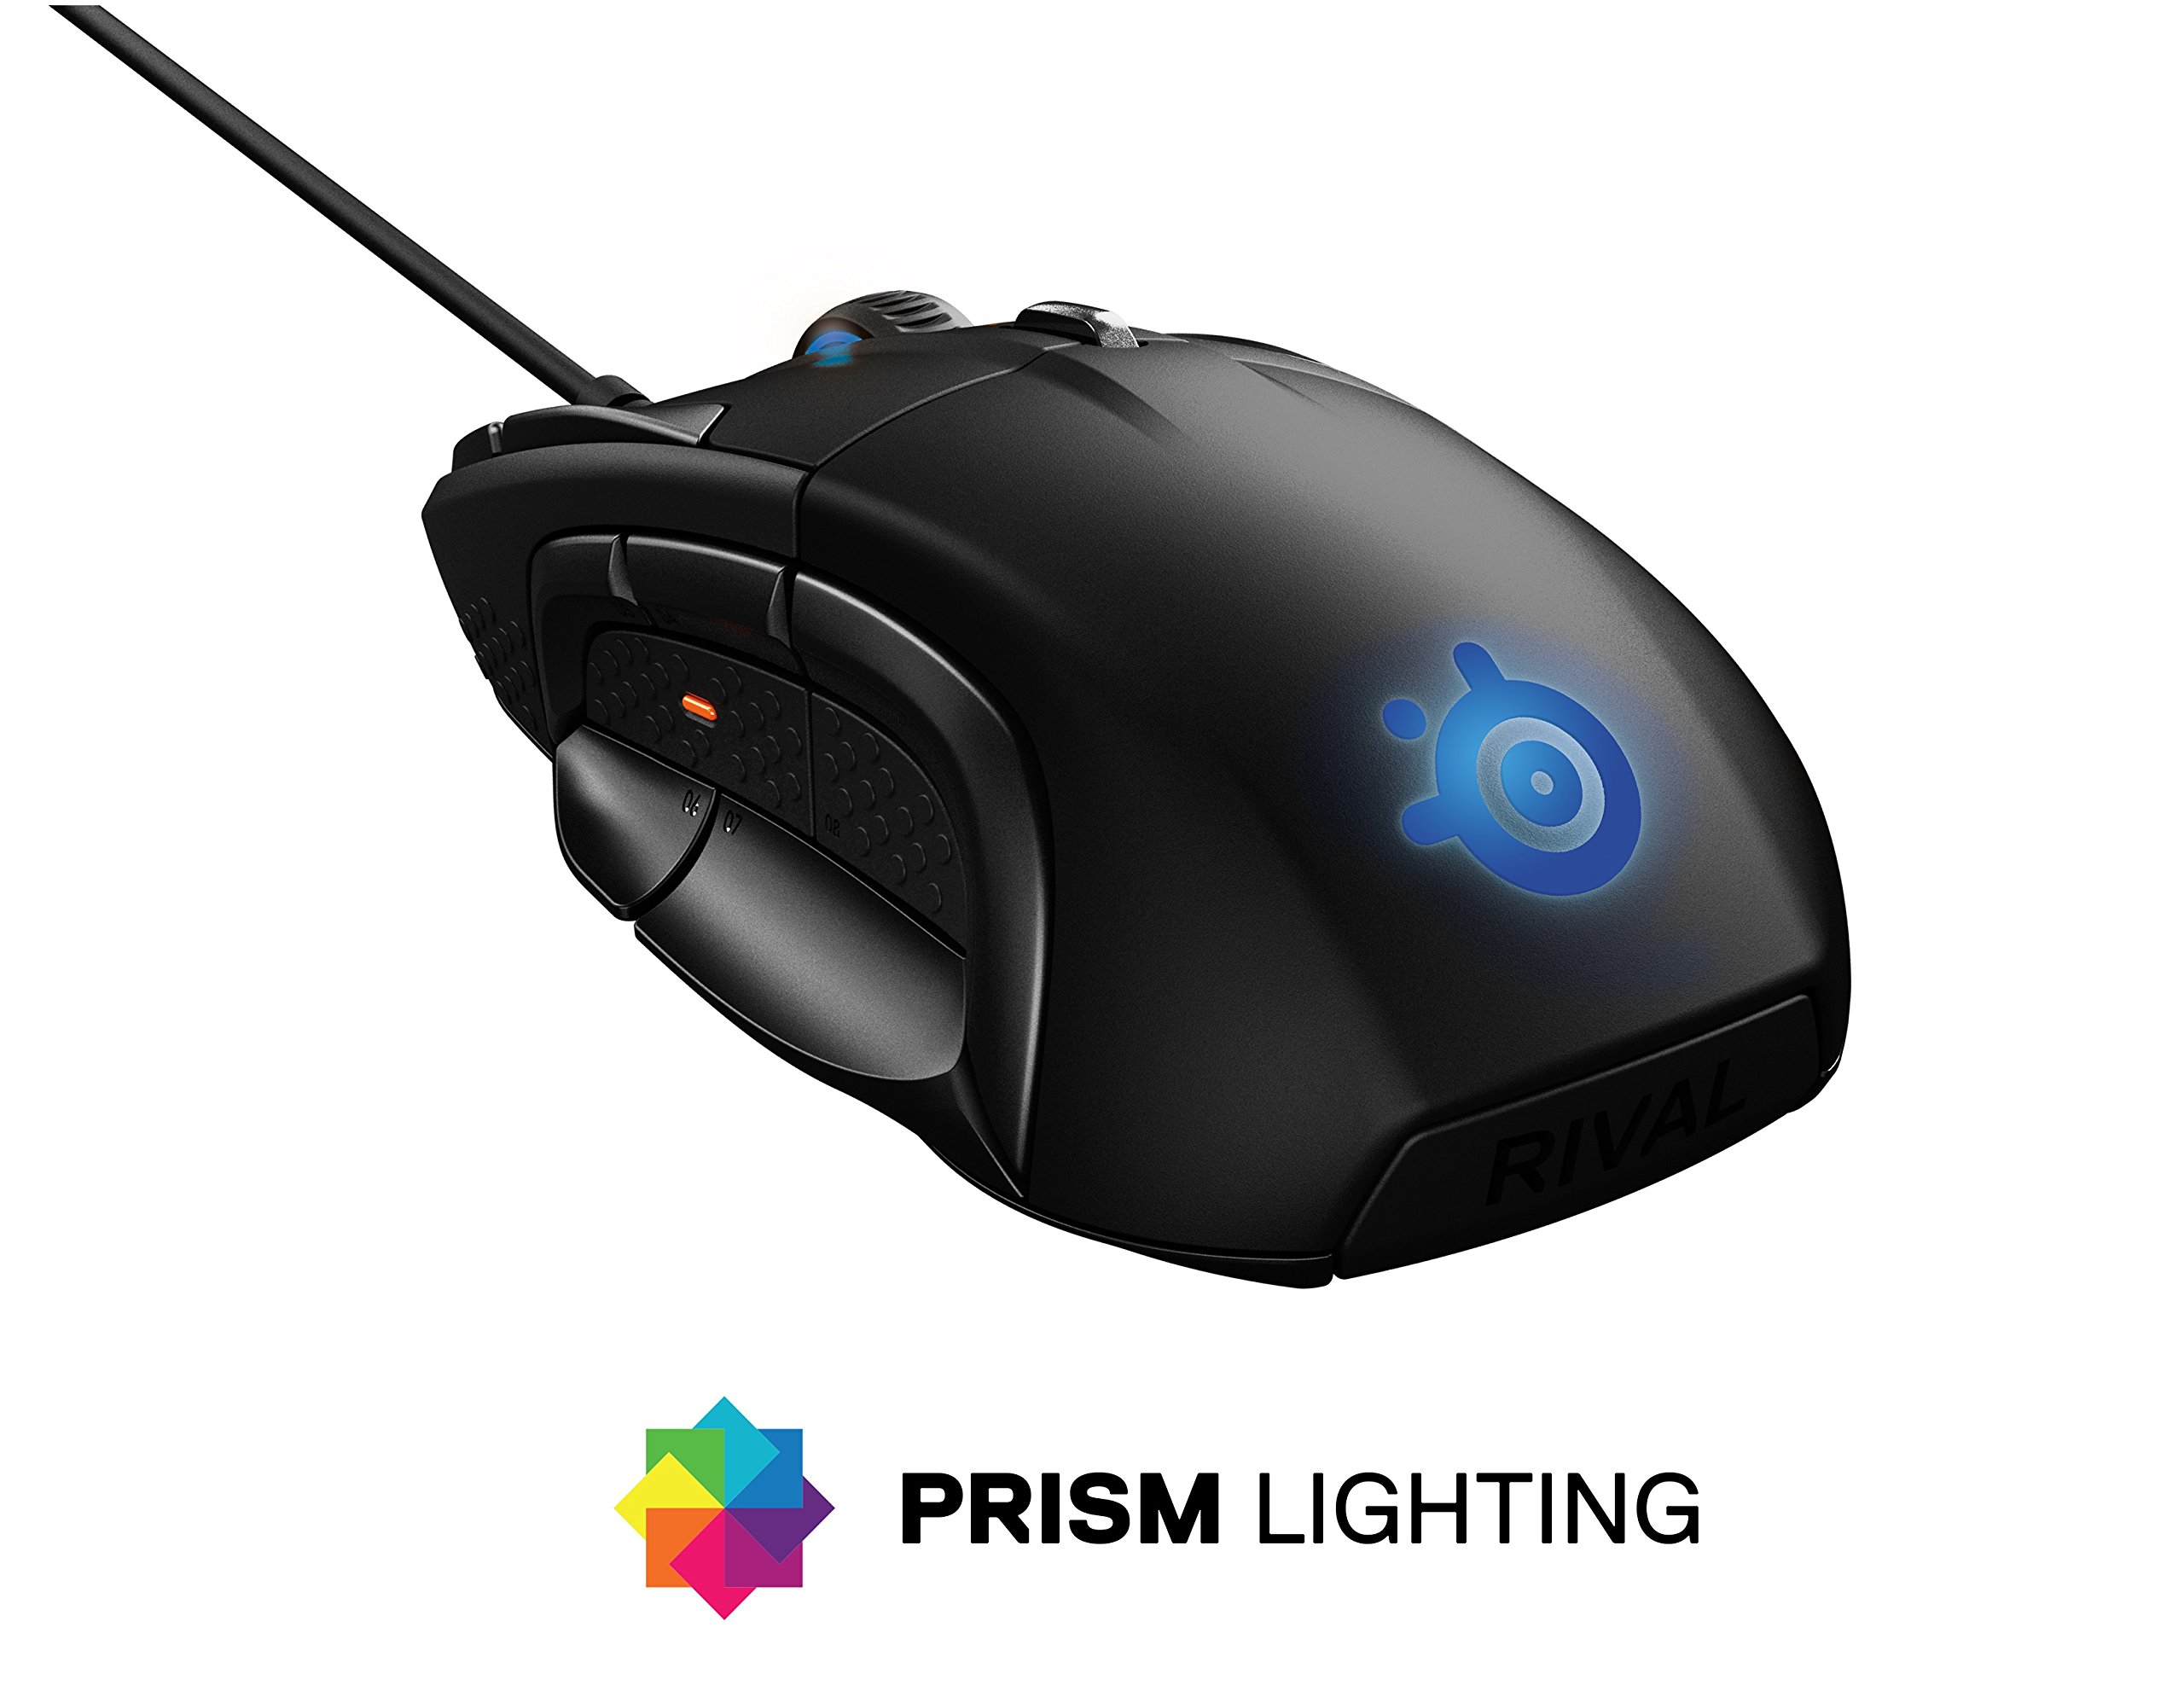 SteelSeries Rival 500 MMO/MOBA 15-Button Programmable Gaming Mouse - 16,000 CPI by SteelSeries (Image #2)